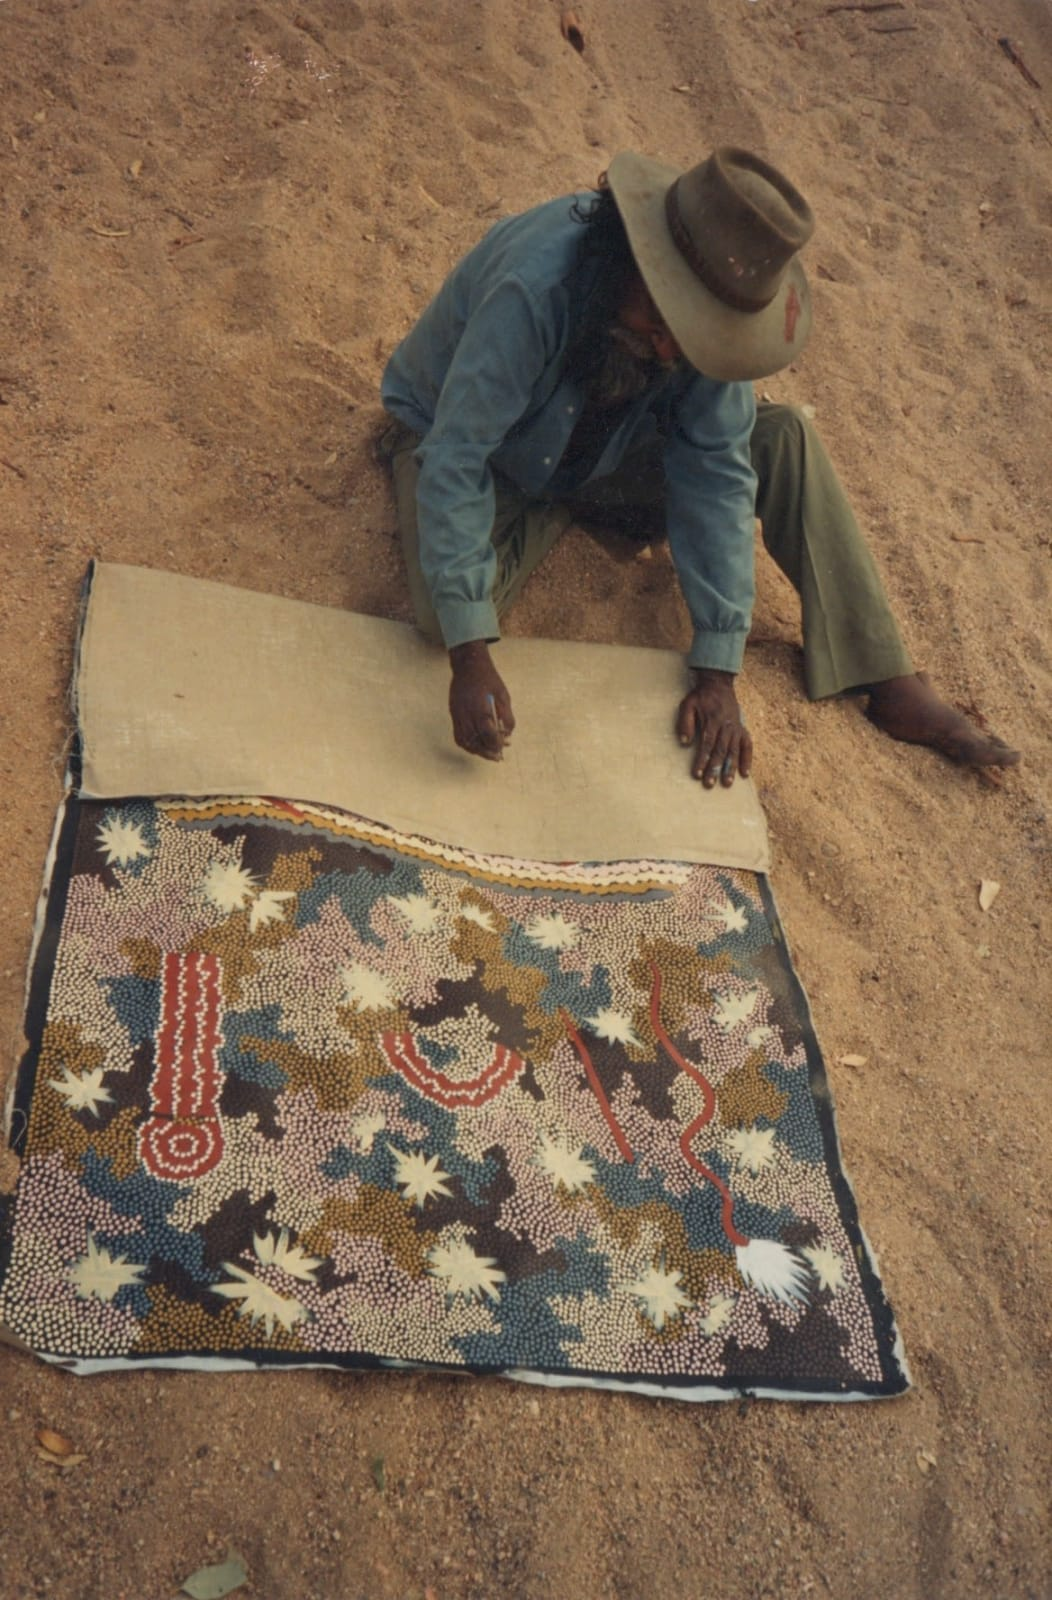 Clifford Possum painting in the Australian Desert